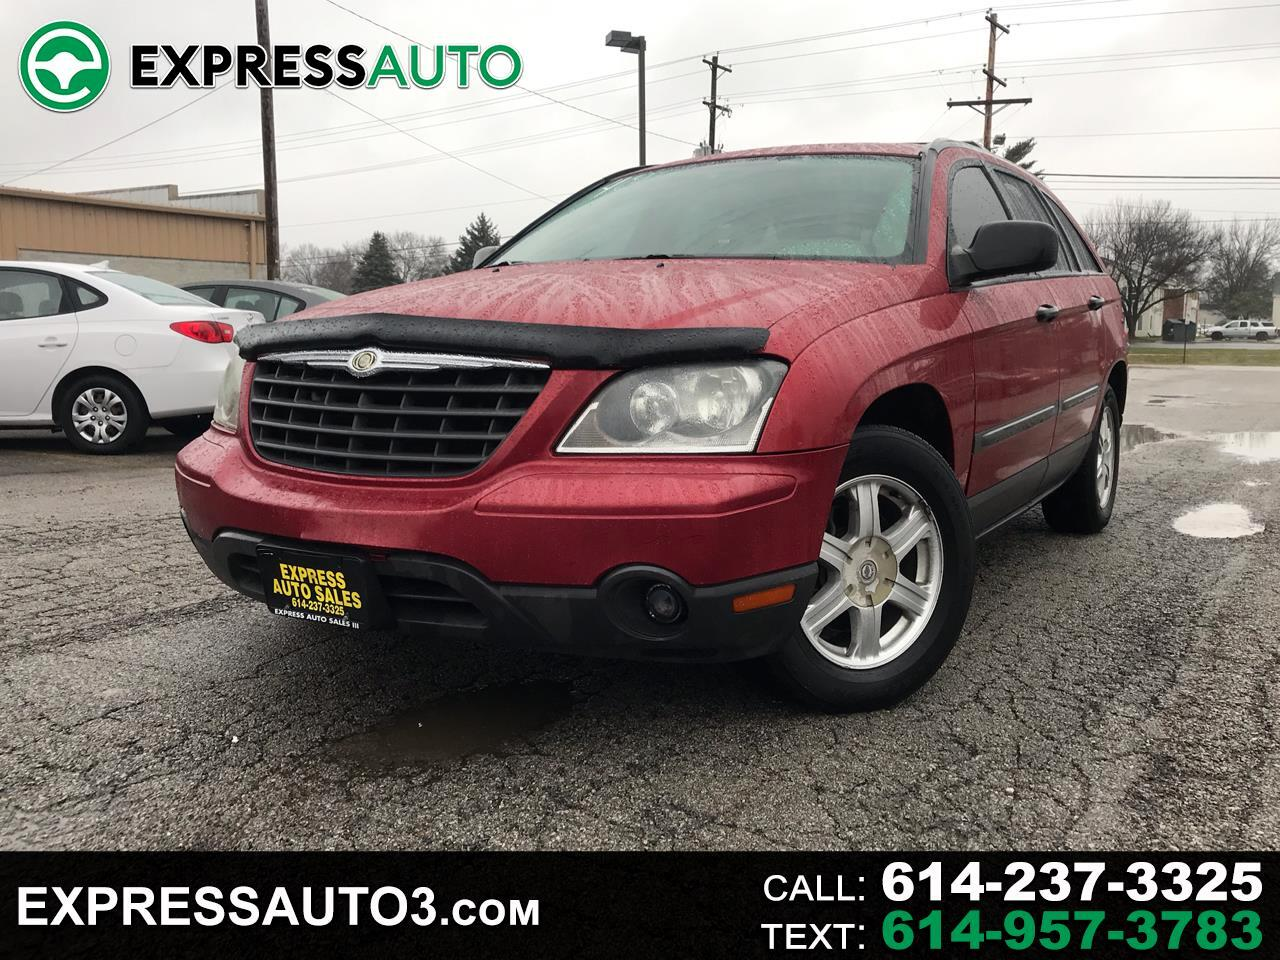 Chrysler Pacifica 4dr Wgn AWD 2006